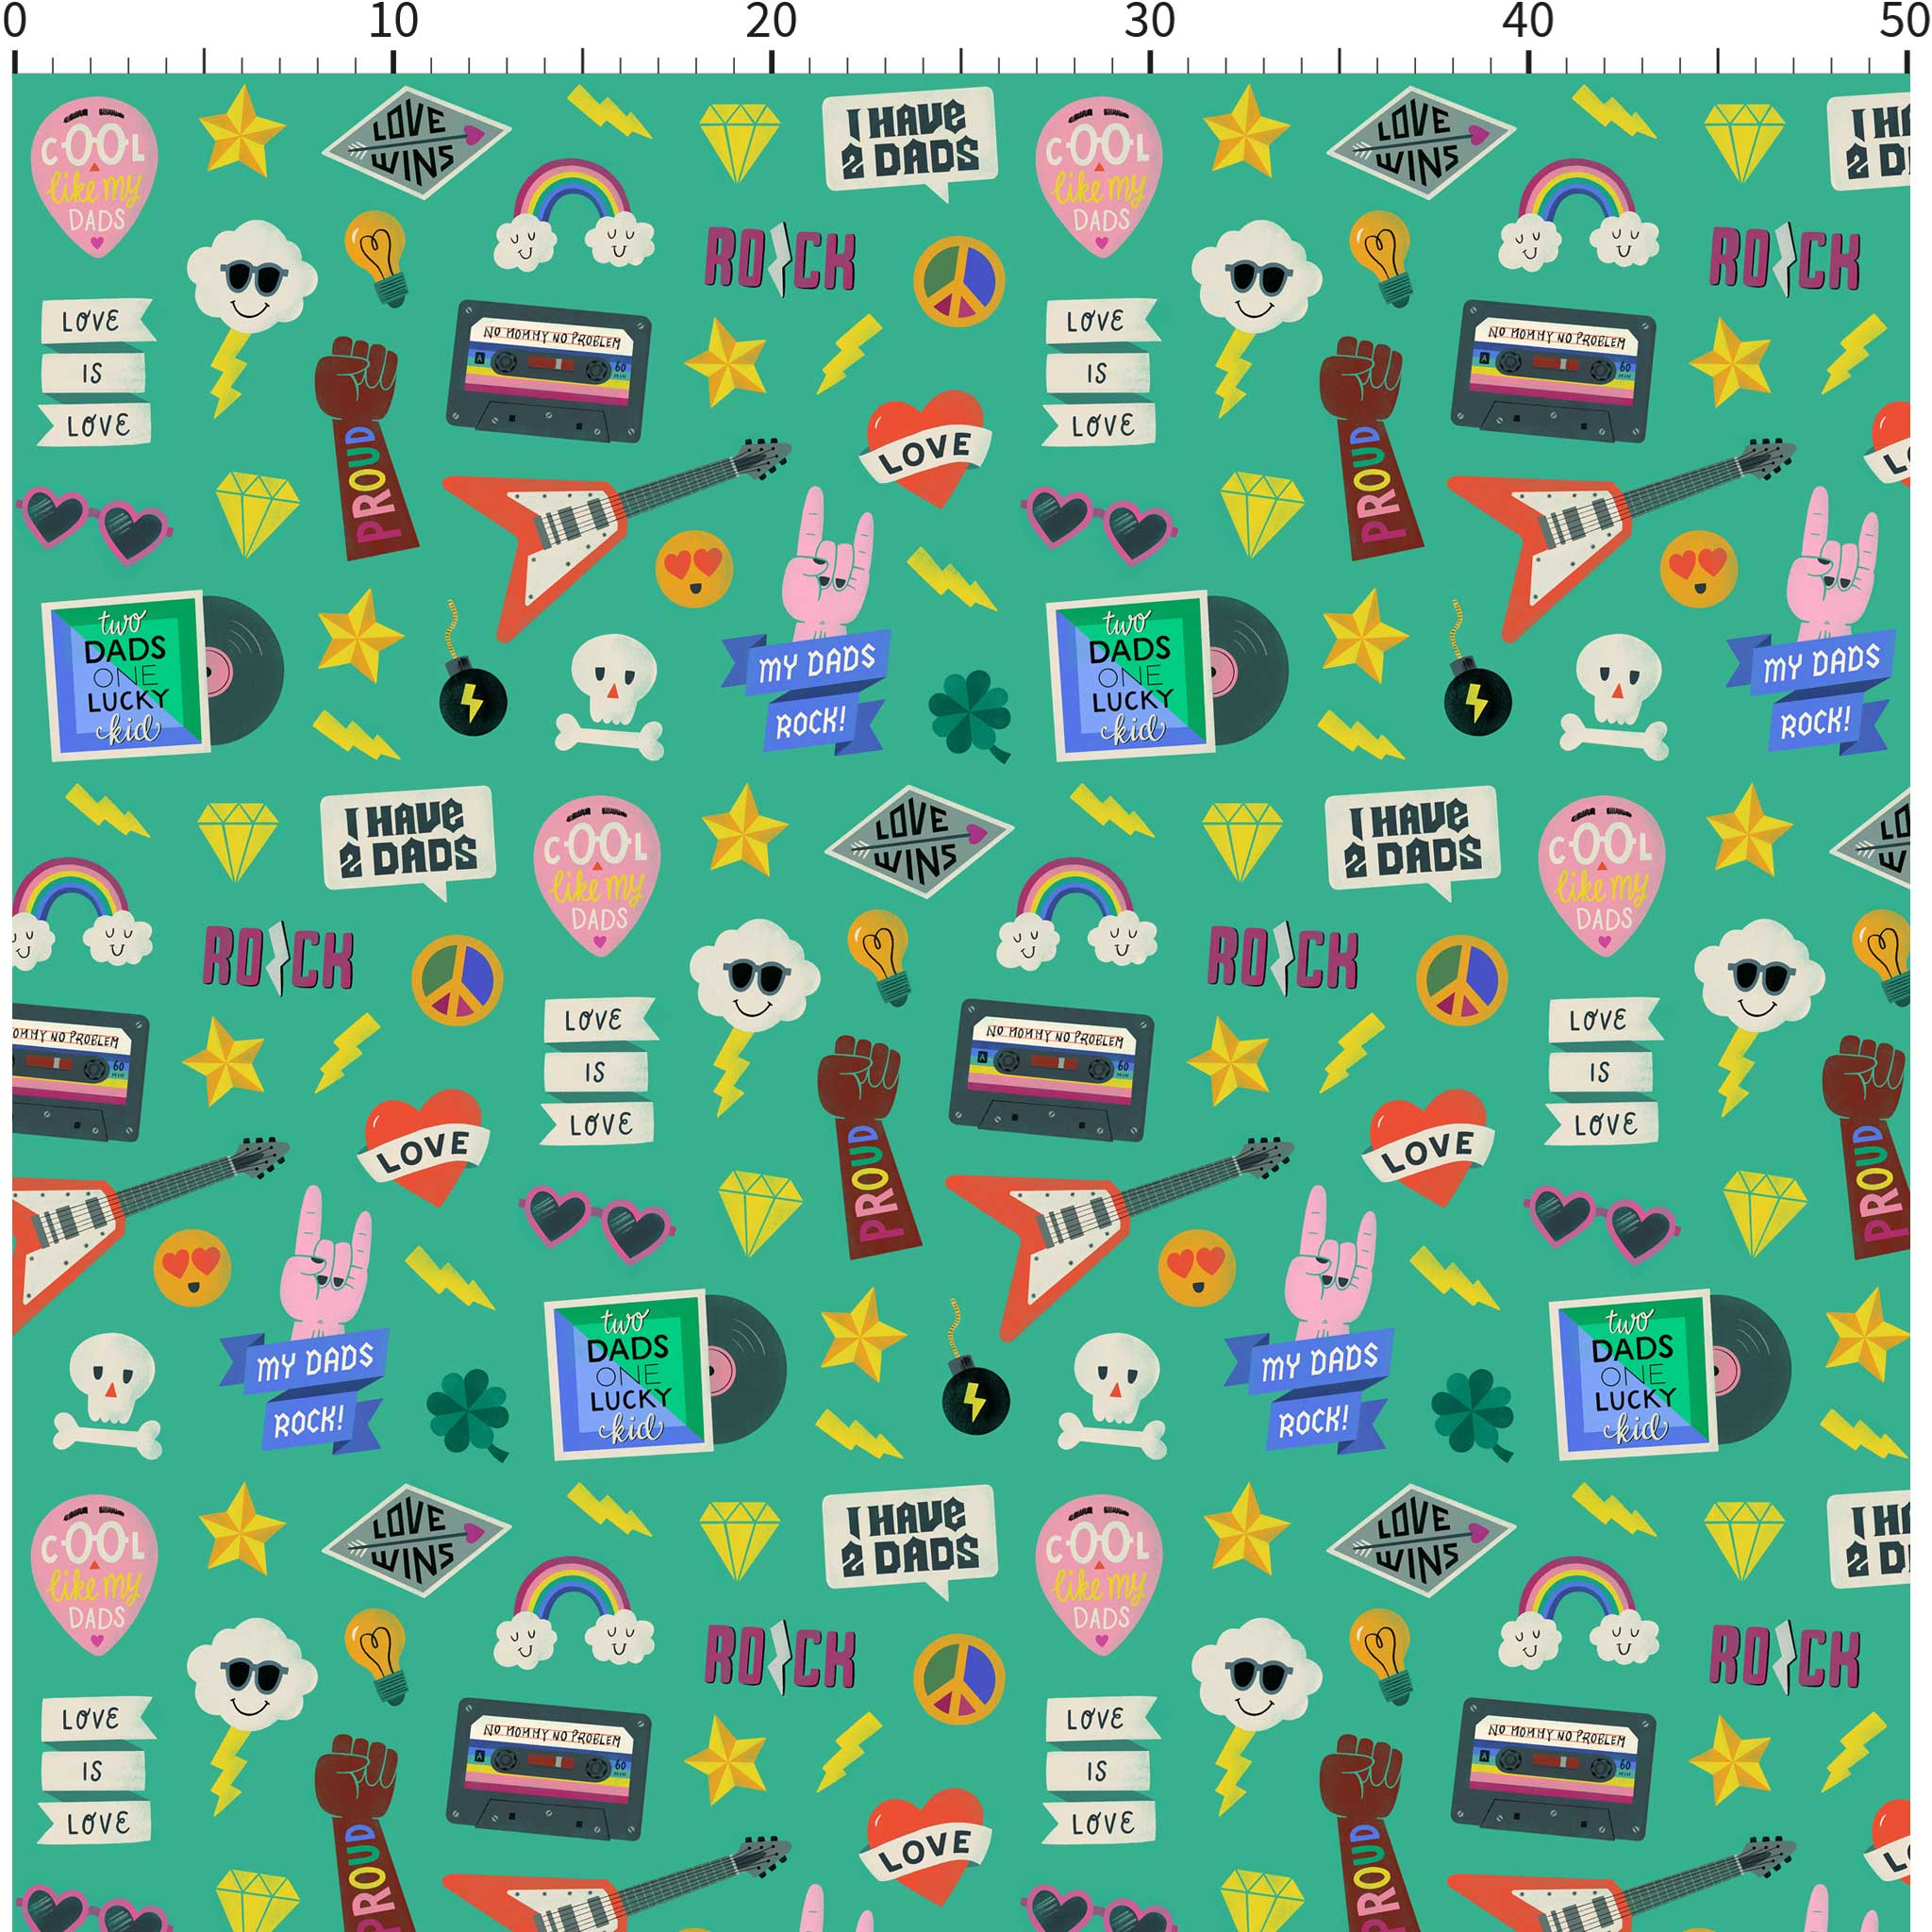 Wrapping paper two dads (200x50cm)